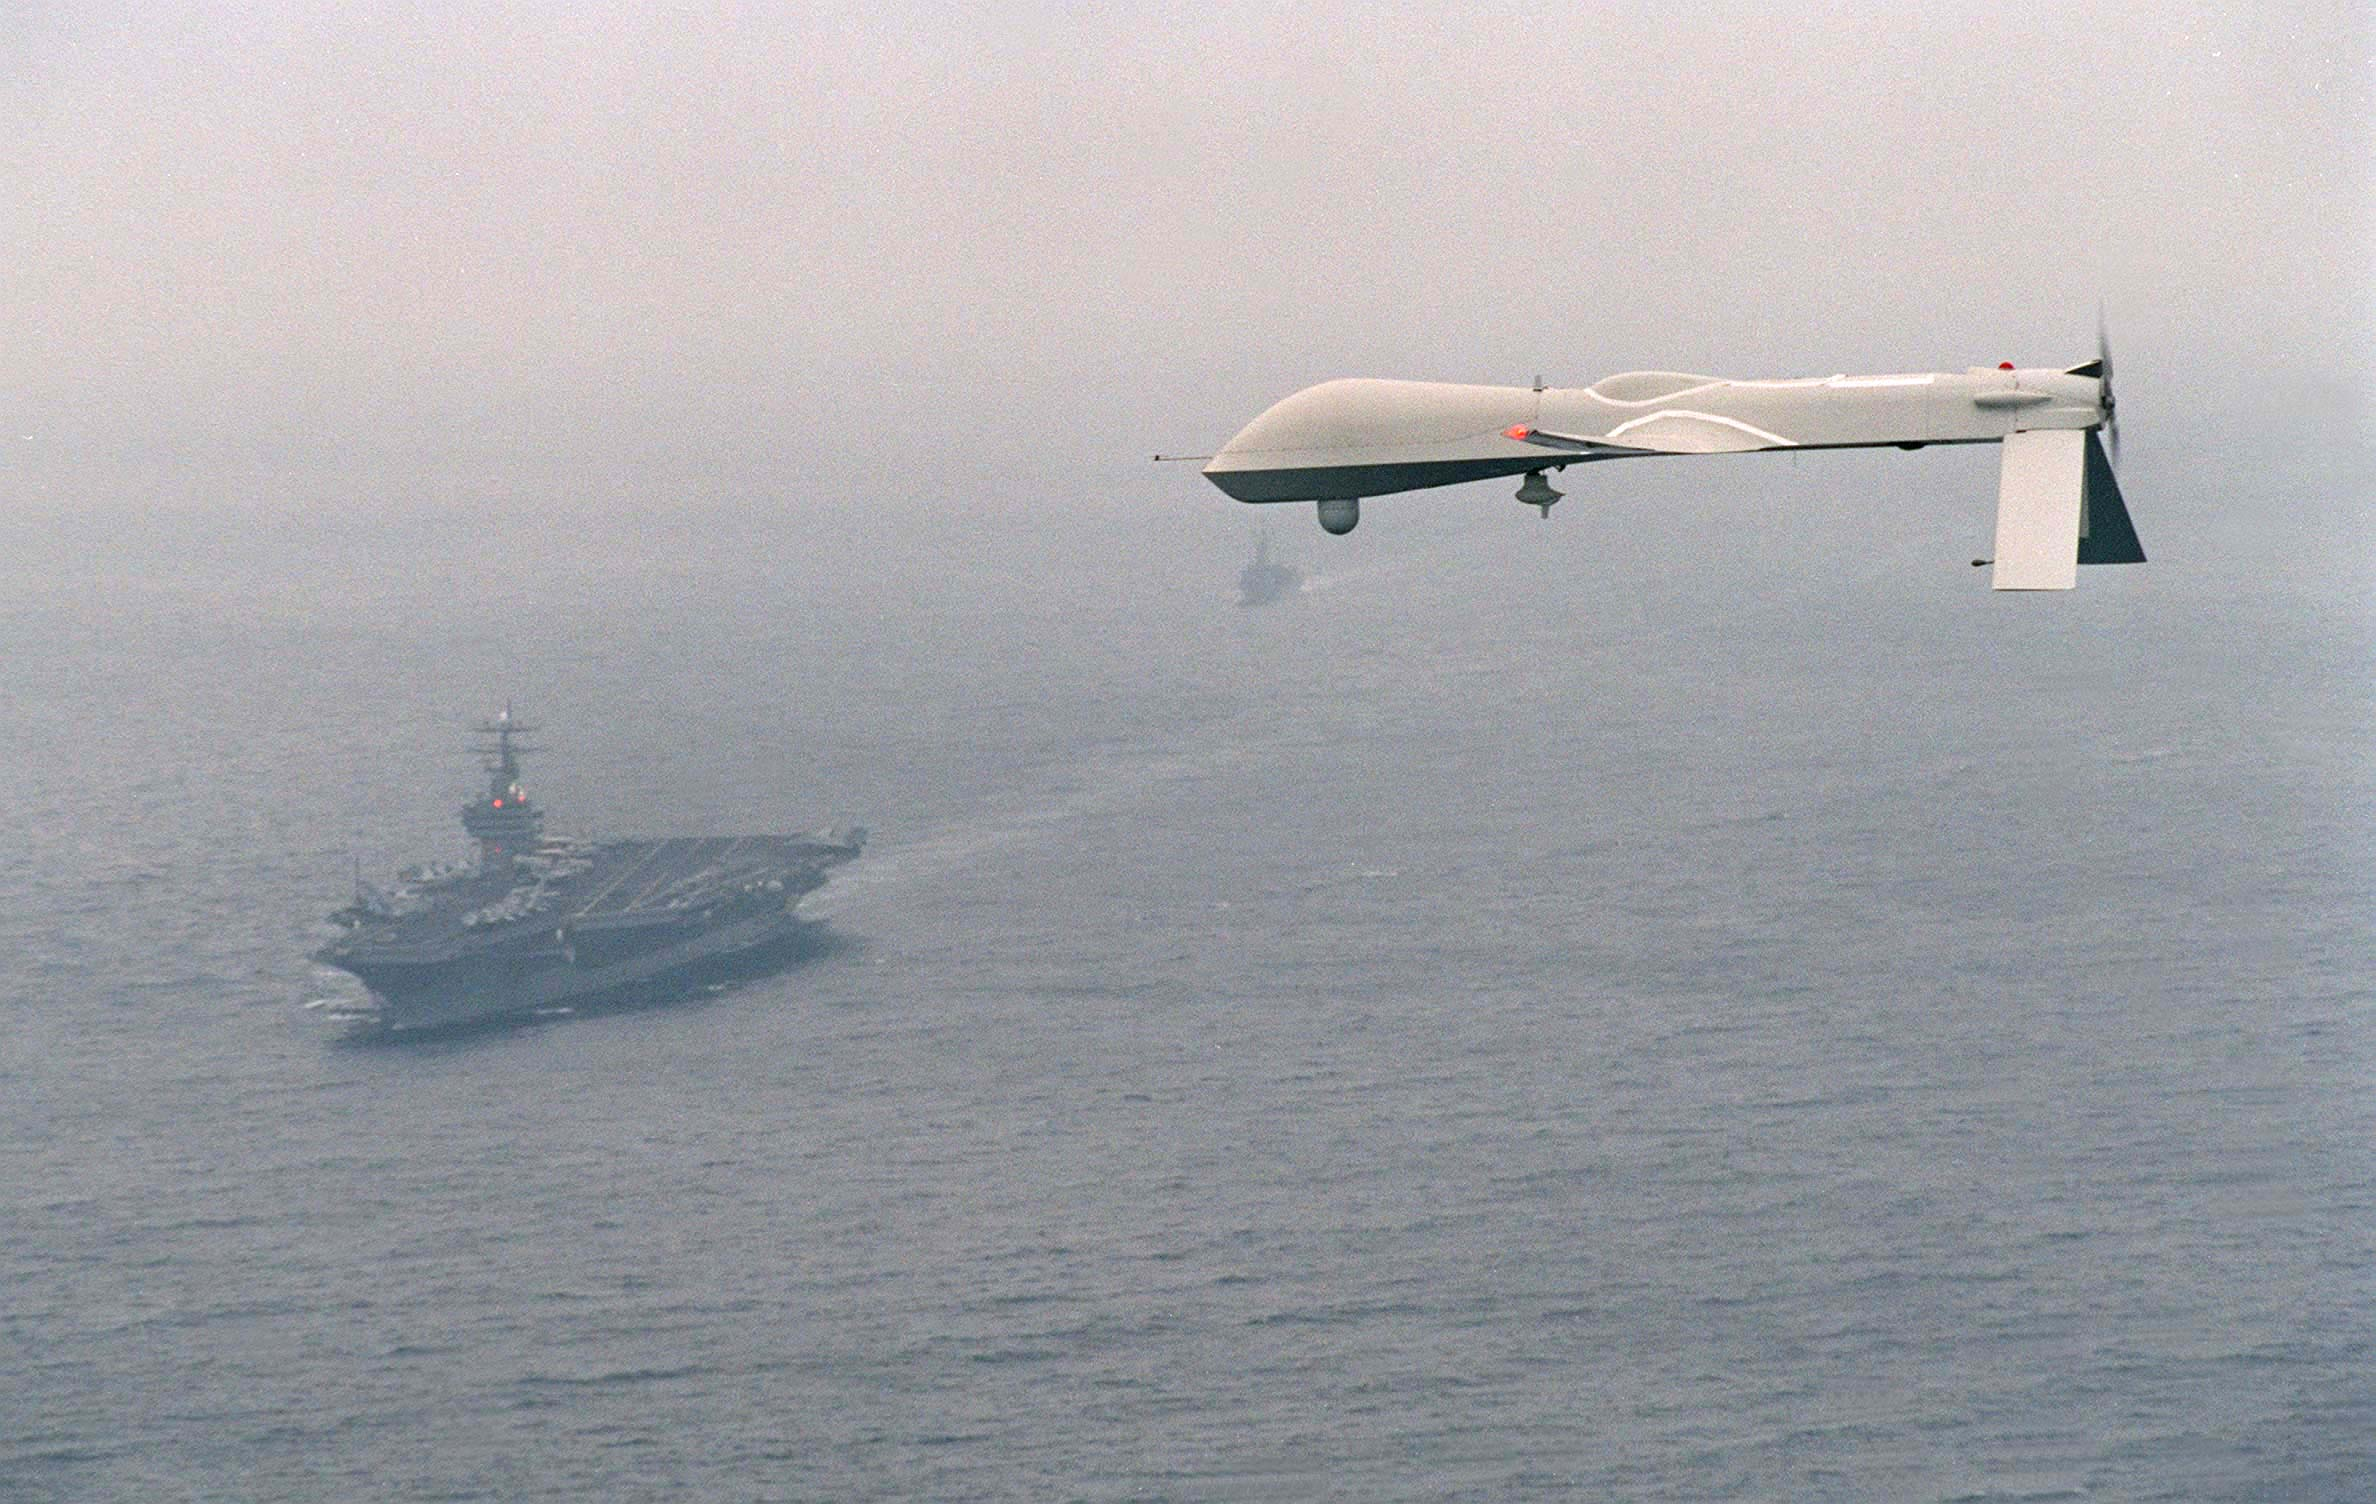 "THE PREDATOR UNMANNED AERIAL VEHICLE (UAV) FLIES ABOVE USS CARL VINSON (CVN 70) ON A SIMULATED NAVY RECONNAISSANCE FLIGHT HEADED BY COMMAND CARRIER GROUP ONE ON DECEMBER 5, 1995, ABOUT 100 MILES OFF THE SAN DIEGO COASTLINE. THE FLIGHT IS THE PREDATOR'S FIRST MARITIME MISSION WITH A CARRIER BATTLE GROUP; PROVIDING ""NEAR REAL-TIME"" INFRARED AND COLOR VIDEO TO THE SHIP DURING ITS FLIGHT. THE PREDATOR, LAUNCHED FROM SAN NICHOLAS ISLAND 0FF THE SOUTHERN CALIFORNIA COASTLINE, IS CAPABLE OF OVER 50 HOURS OF NON-STOP FLIGHT AND IS OPERATED BY A JOINT ARMED SERVICES DETACHMENT. THE DETACHMENT CONSISTS OF A CREW OF MILITARY PILOTS, TECHNICIANS, OPERATORS AND ANALYSTS. THE NAVY'S PLANS FOR THE PREDATOR IN FUTURE EXERCISES AND OPERATIONS INCLUDE SHIP RECONNAISSANCE, BATTLE-DAMAGE ASSESSMENT, AND SEARCH AND RESCUE MISSIONS. PREDATOR HAS A WINGSPAN OF 48.4 FEET, A LENGTH OF 26.7 FEET AND WEIGHS APPROXIMATELY 1500 POUNDS WHEN FULLY FUELED. COST OF THE AIRCRAFT IS AROUND 3.2 MILLION DOLLARS. AVERAGE SPEED IS APPROXIMATELY 70 KNOTS."